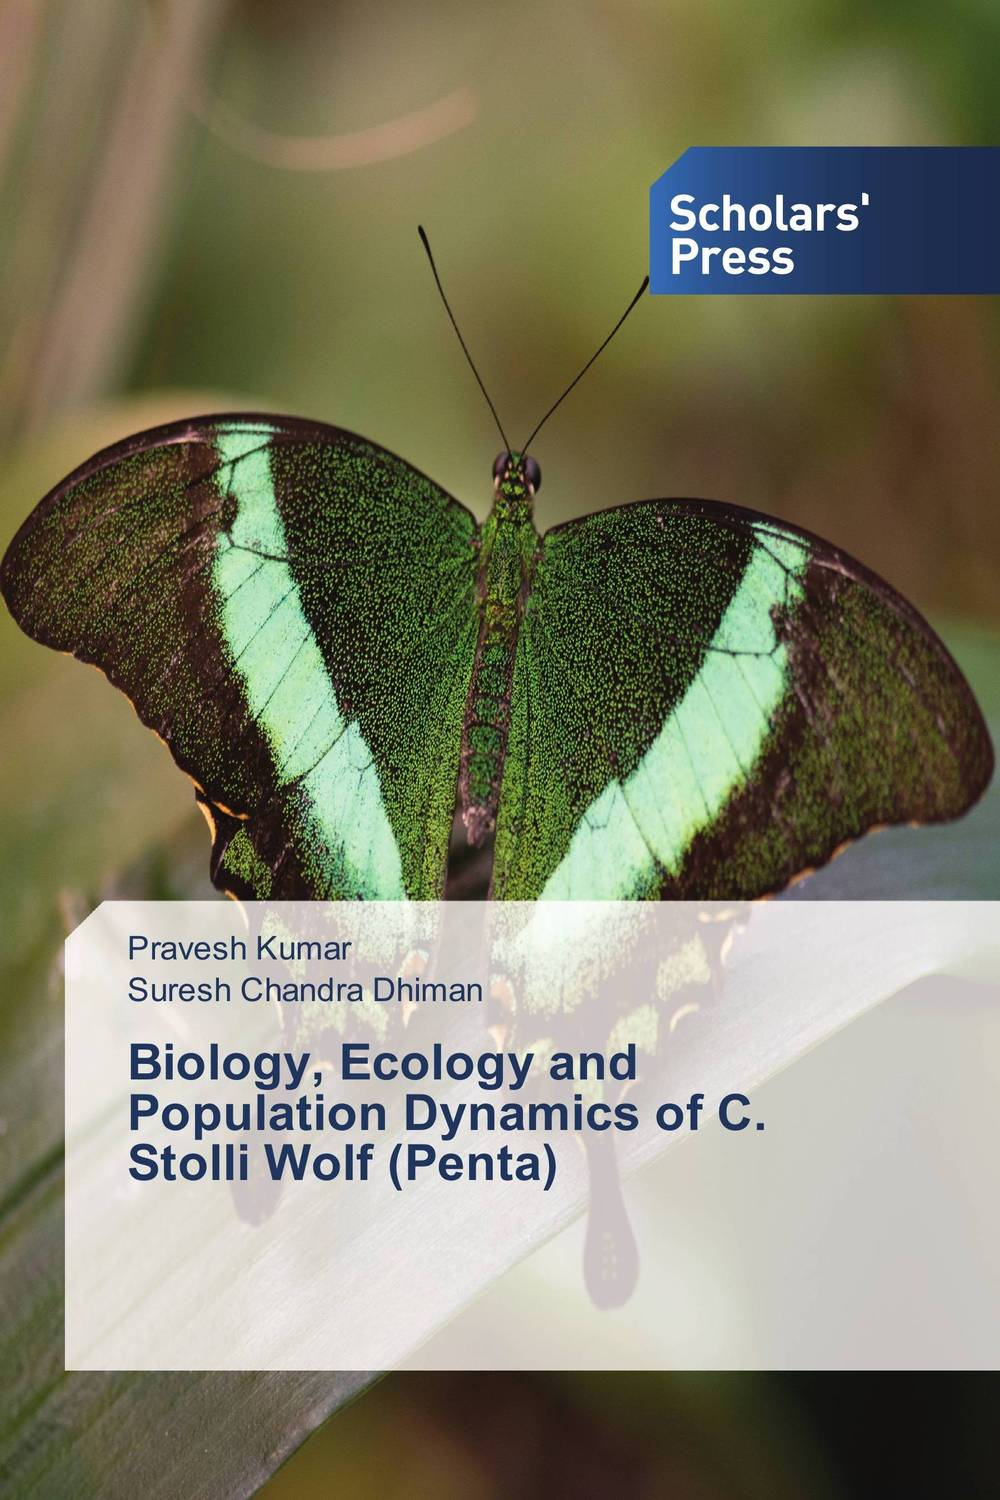 Biology, Ecology and Population Dynamics of C. Stolli Wolf (Penta) population dynamics of ticks on cattle in asia and africa